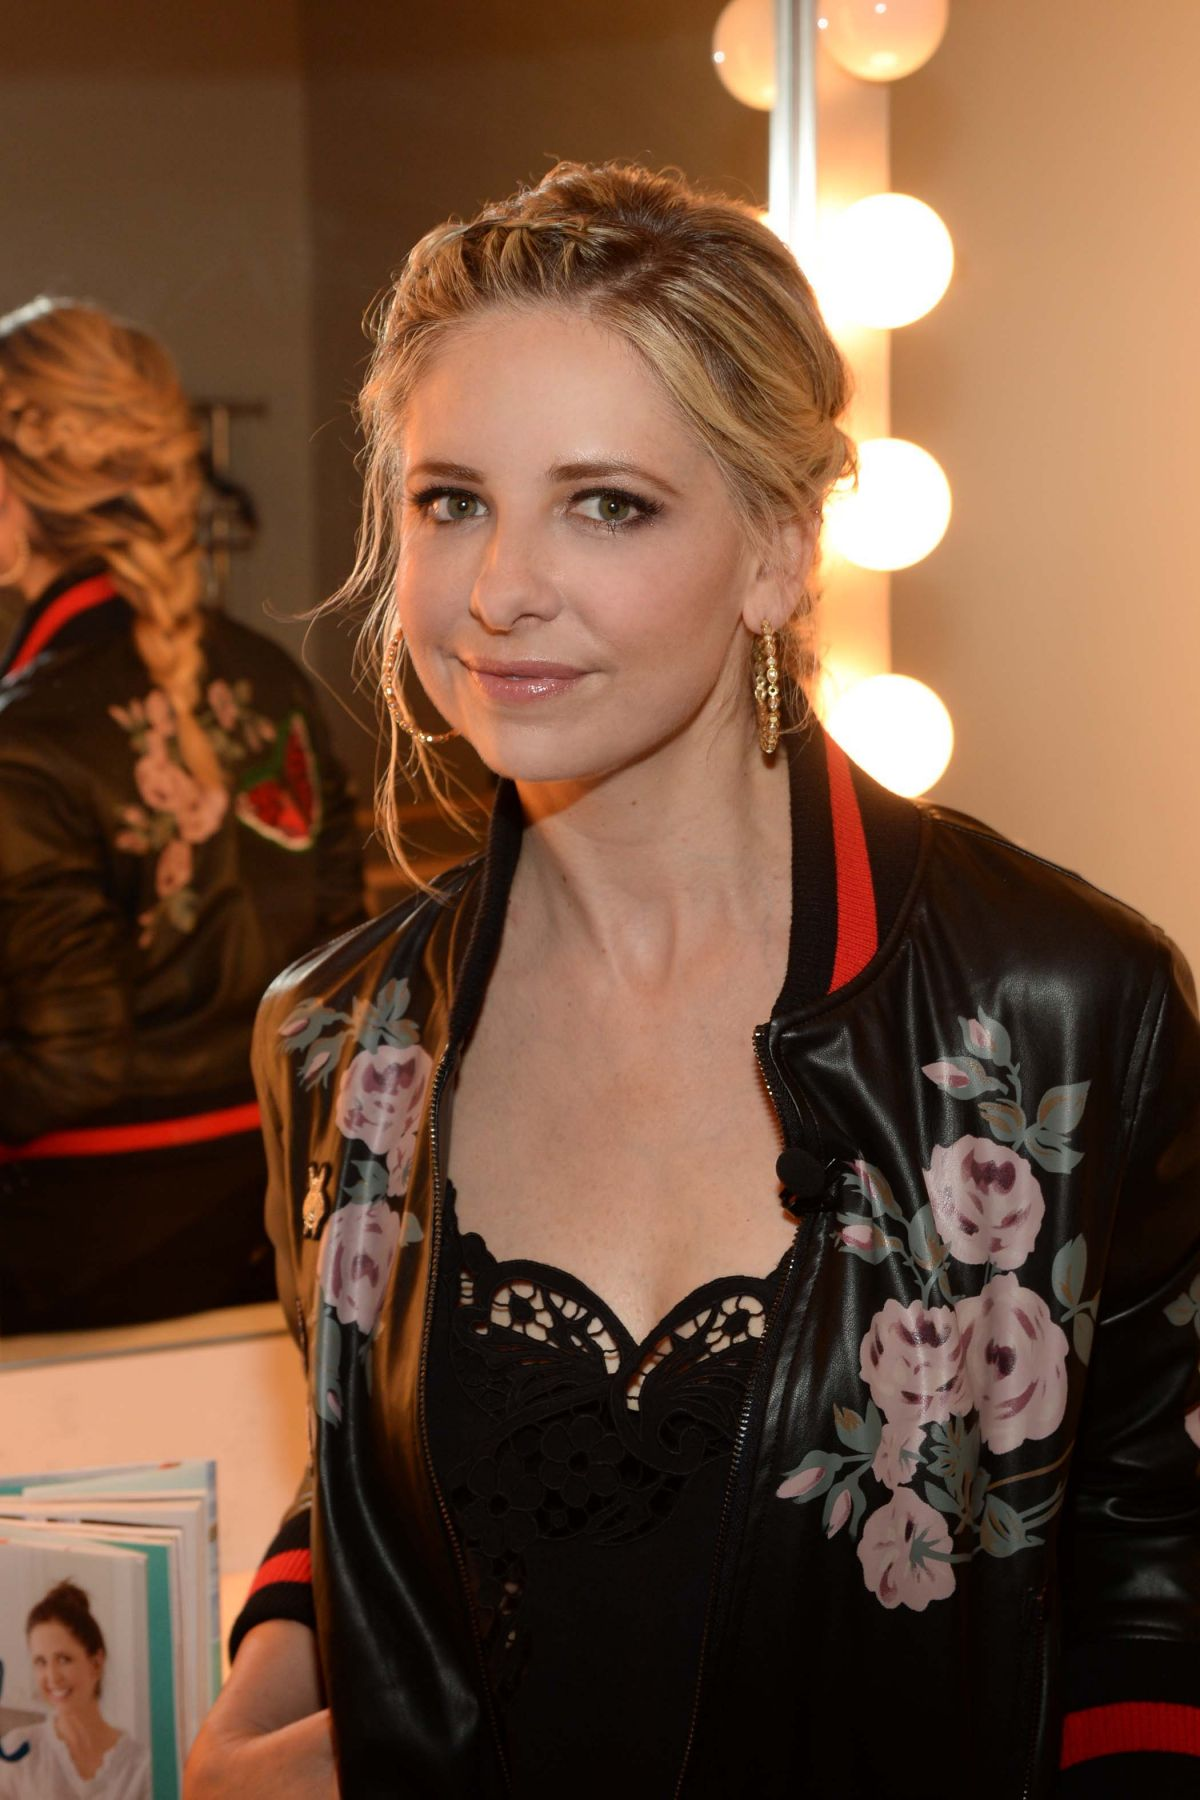 SARAH MICHELLE GELLAR at Hrry Show in New York 04/05/2017